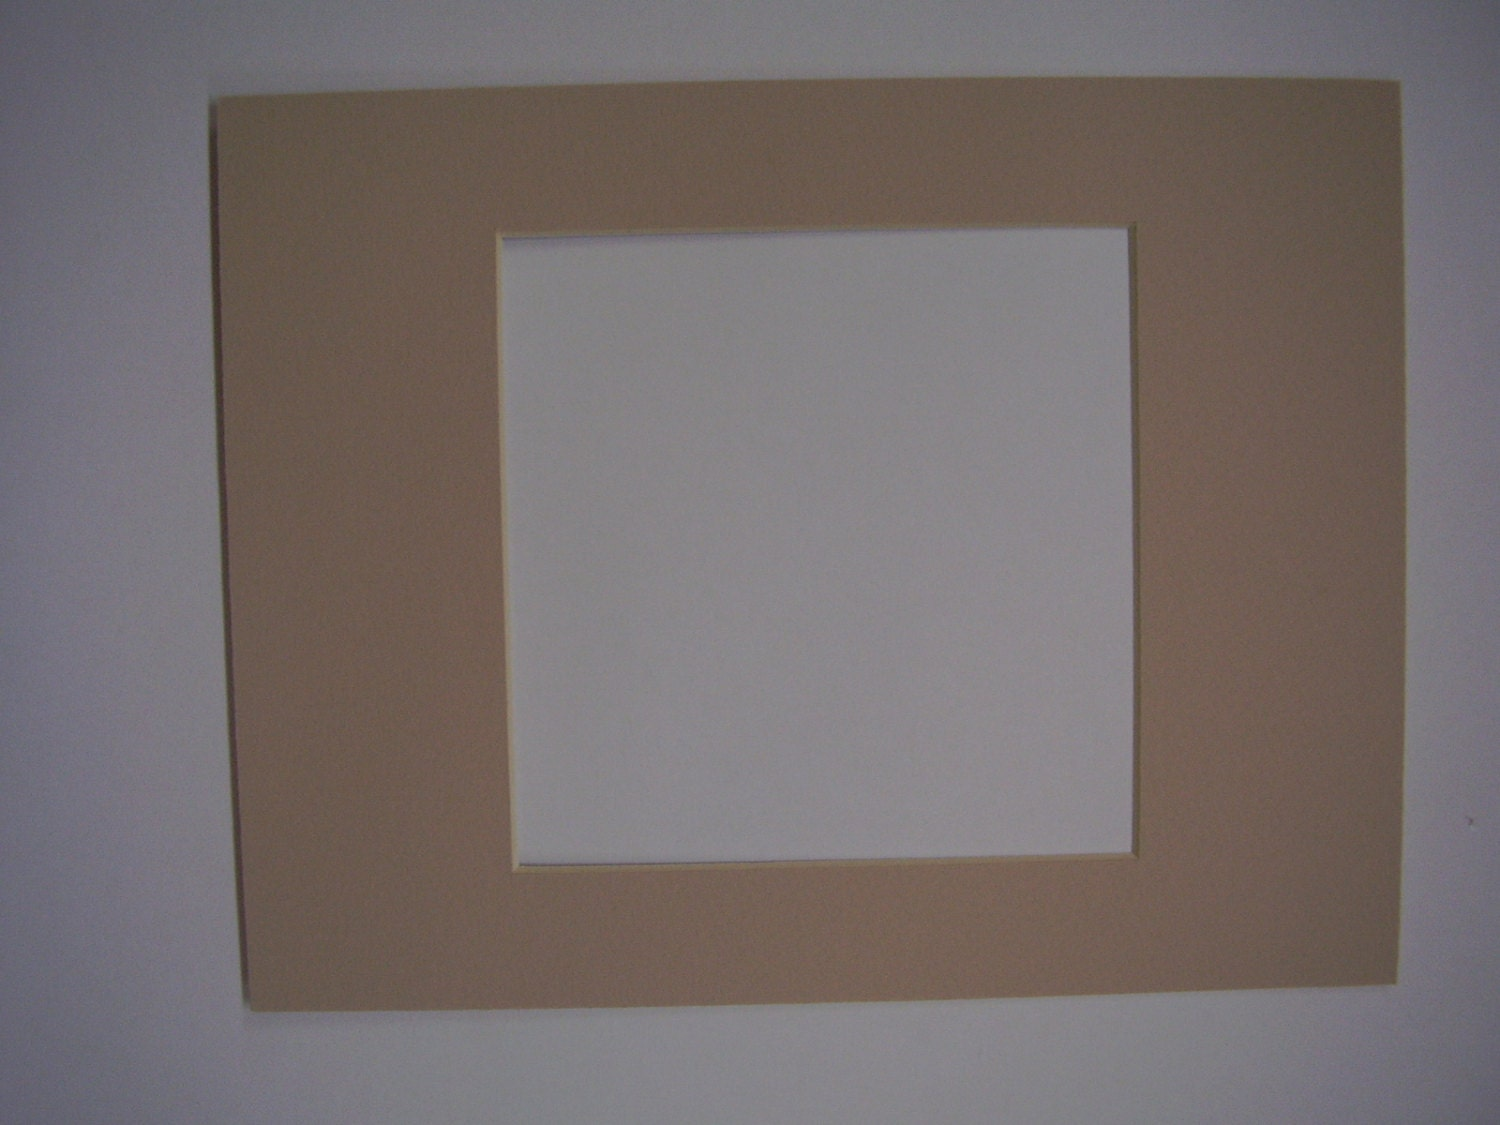 picture frame mat custom cut for 8x10 for 6x8 photo tan. Black Bedroom Furniture Sets. Home Design Ideas